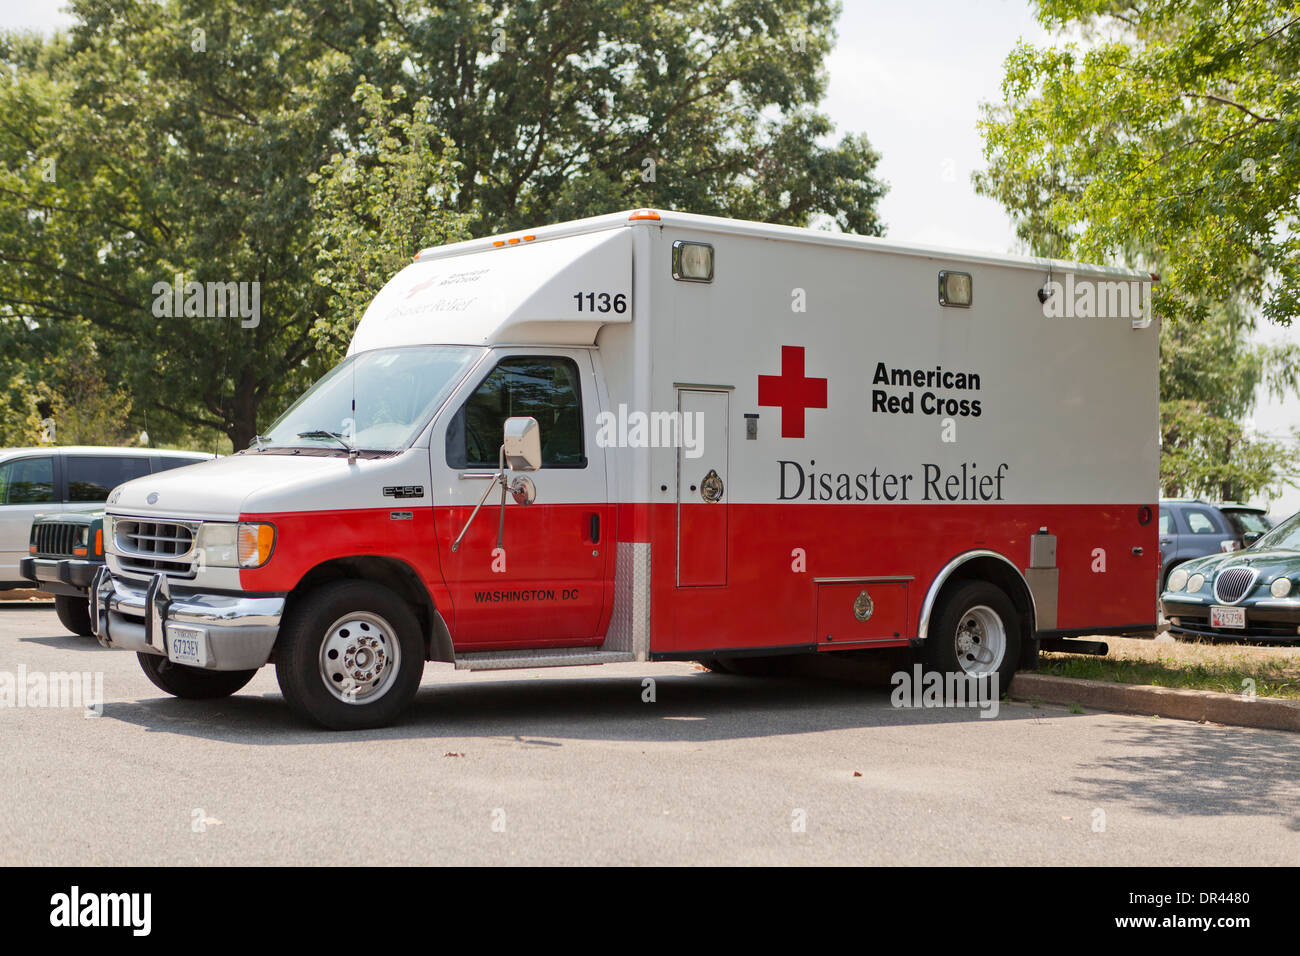 American Red Cross Disaster Relief truck - Washington, DC USA - Stock Image